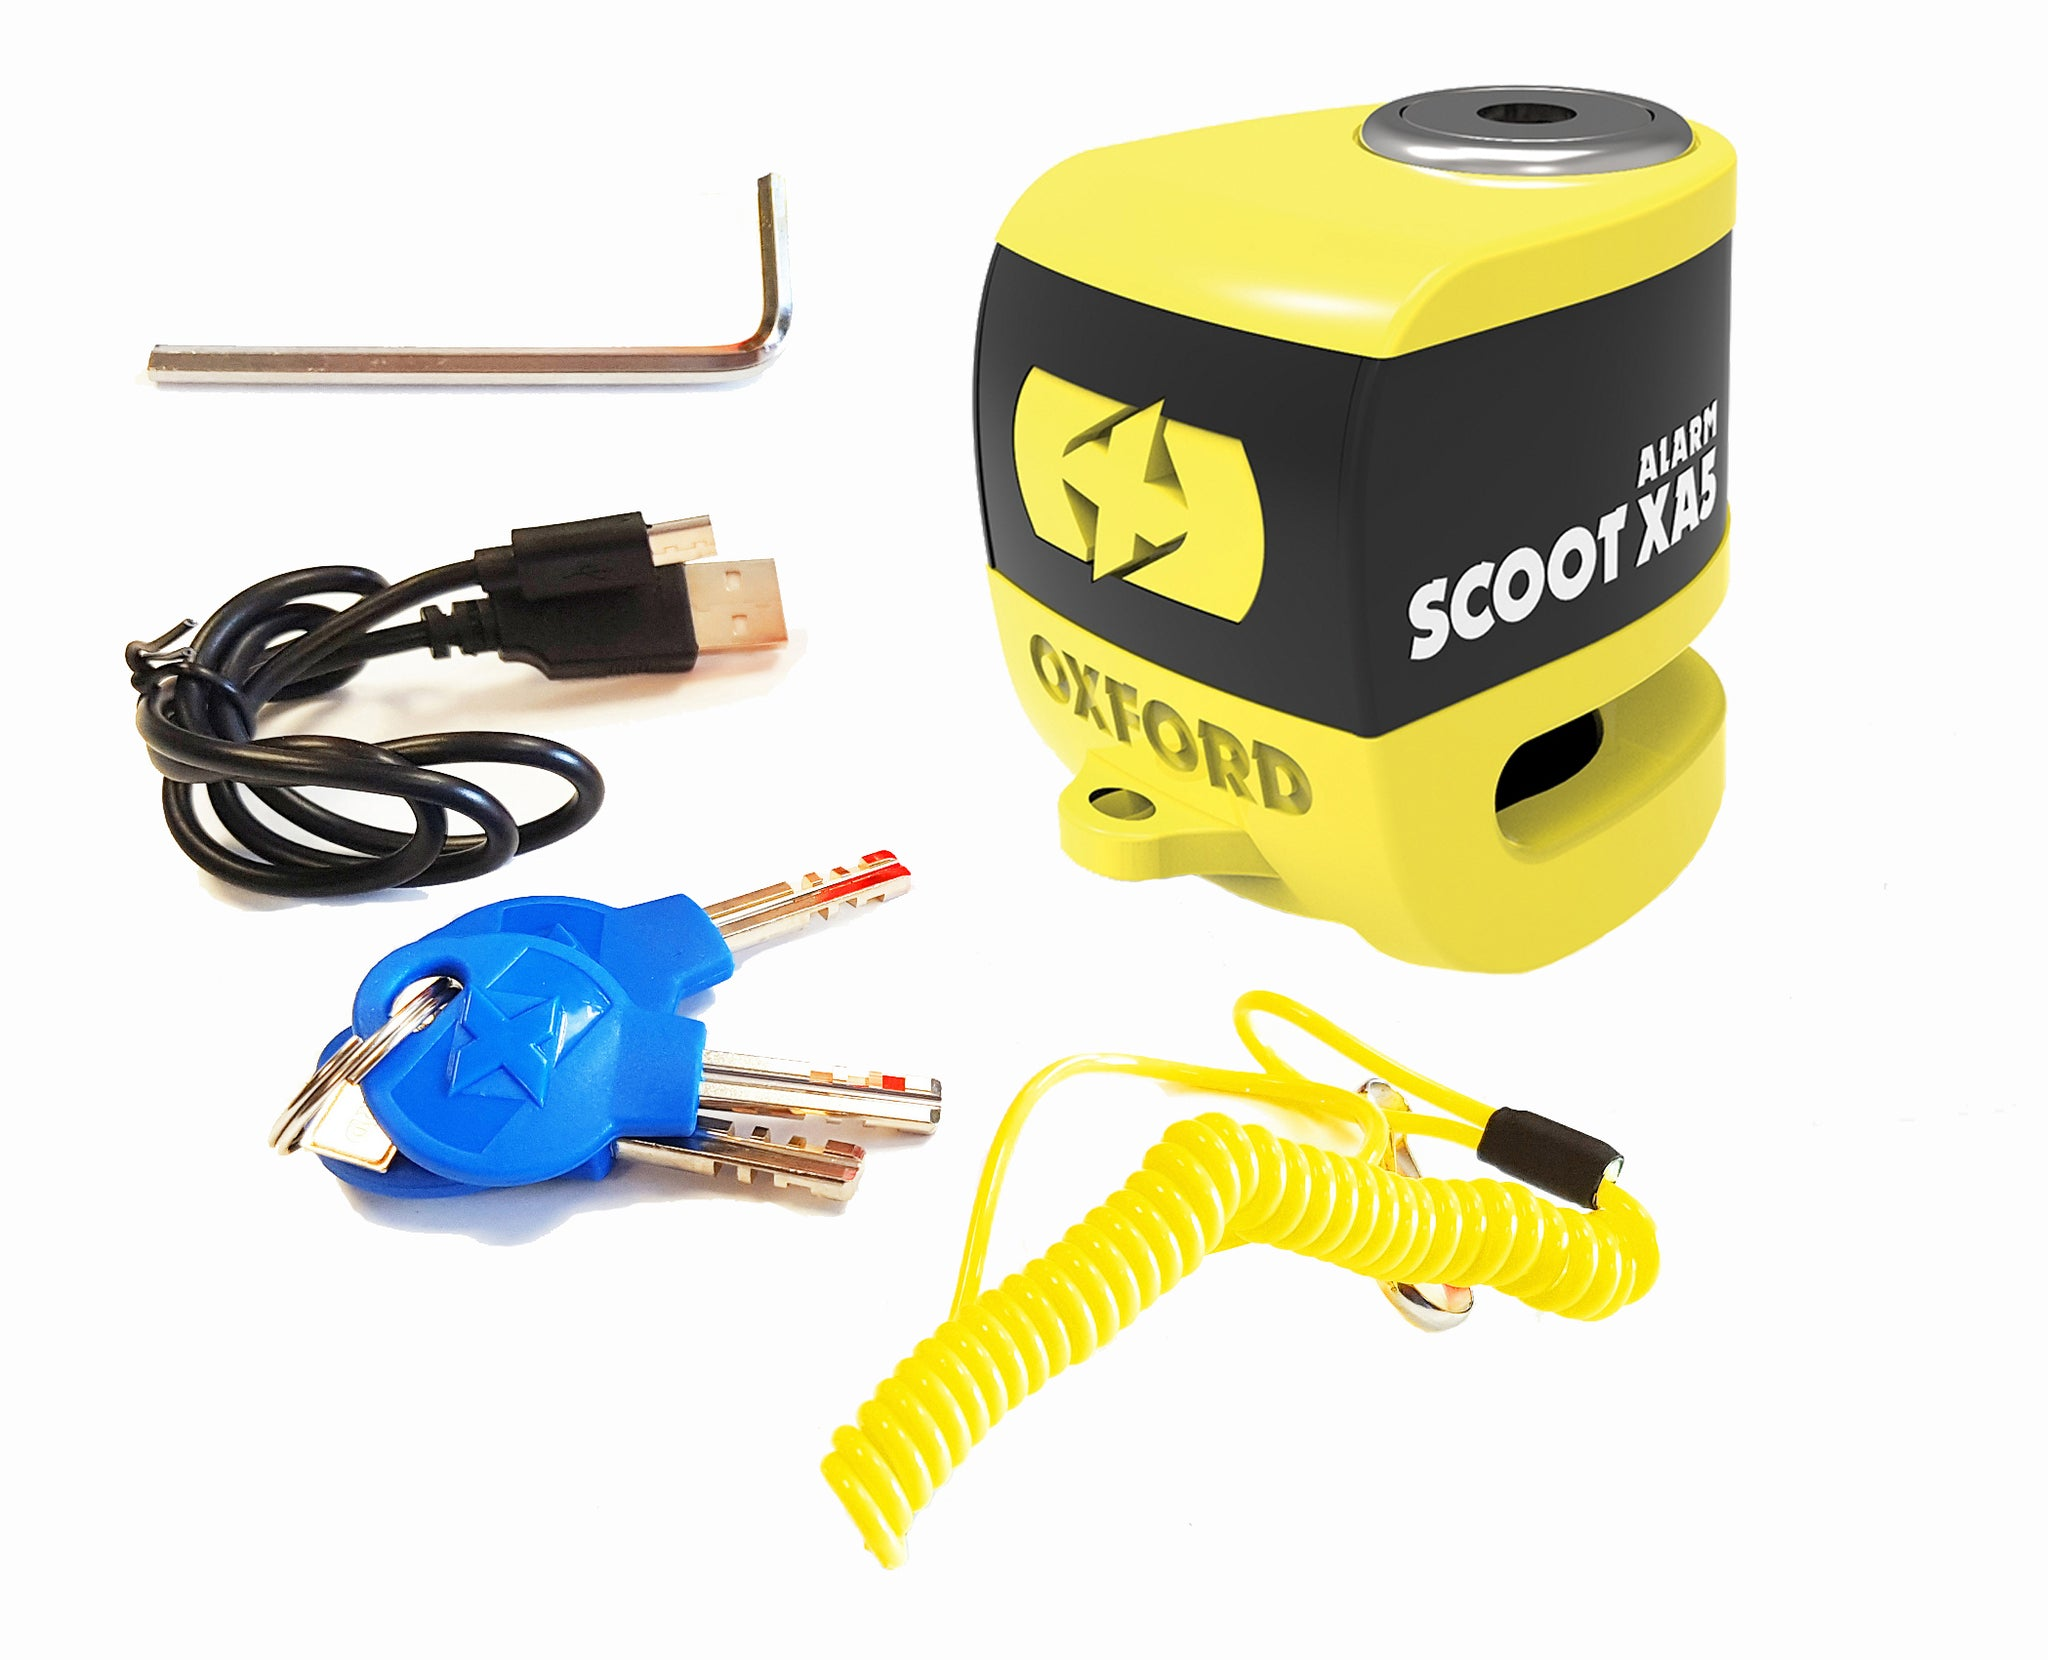 Francis-Barnett Upto 750Cc Oxford SCOOT XA5 LK287 Security Motorbike Yellow Disc Lock